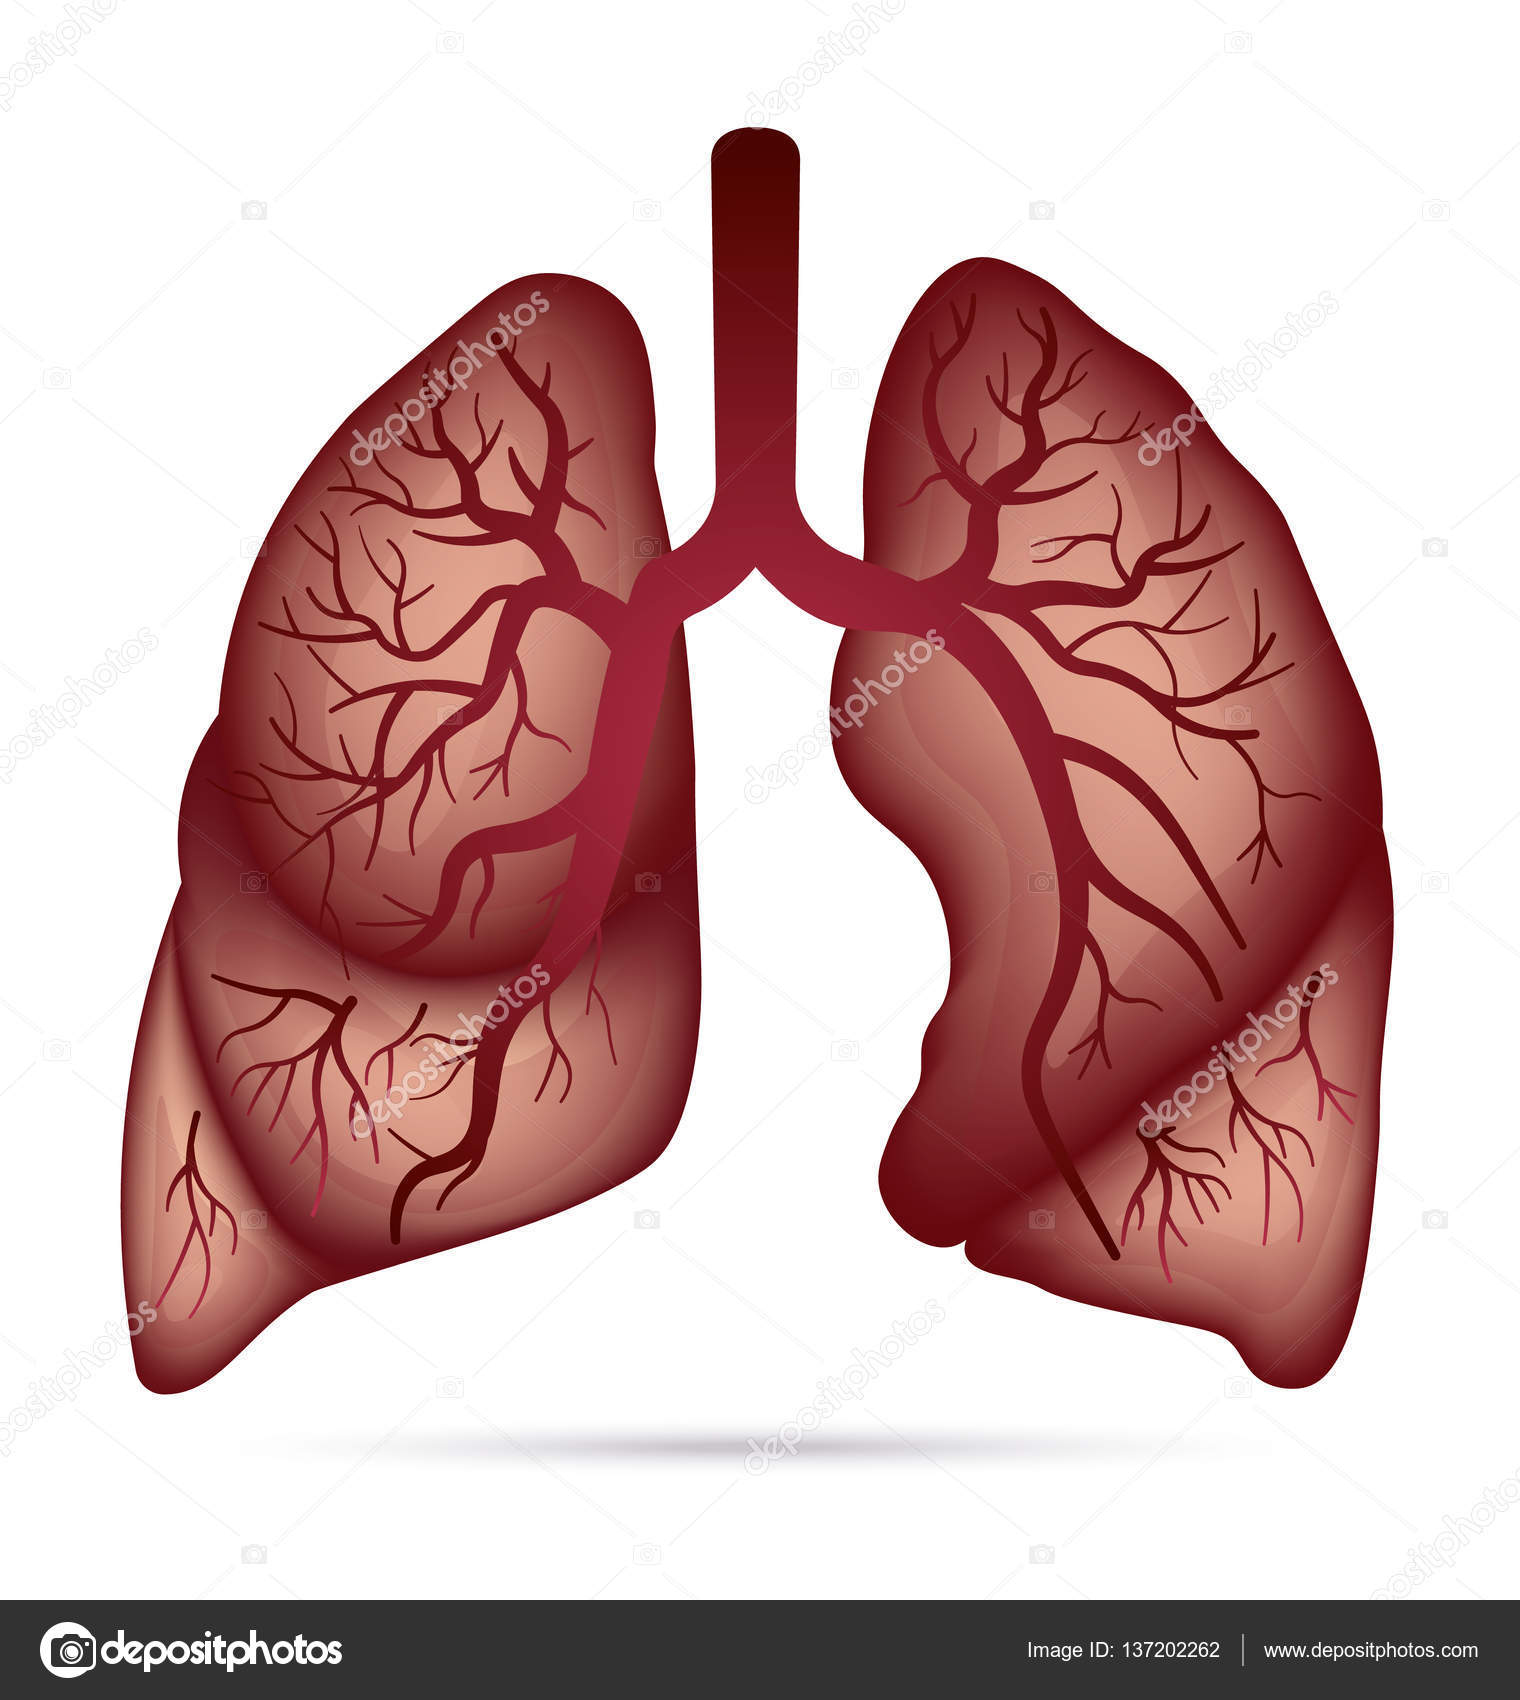 Human lungs anatomy for asthma, tuberculosis, pneumonia. Lung cancer ...